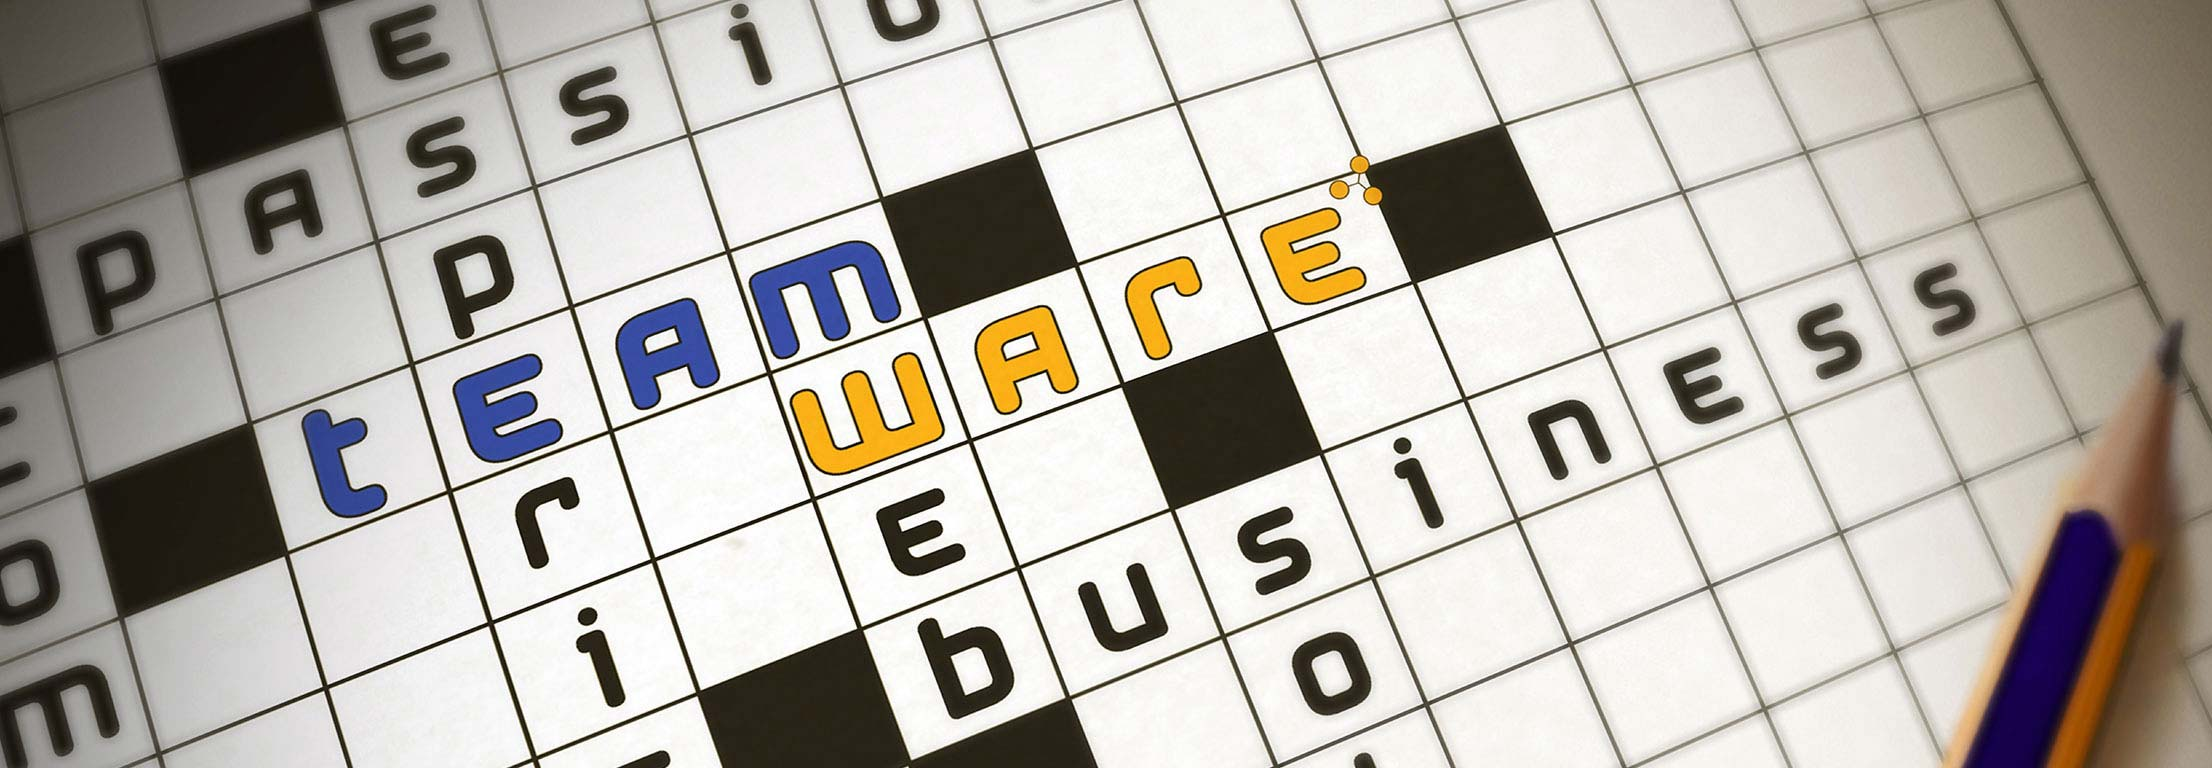 TeamWare CrossWords